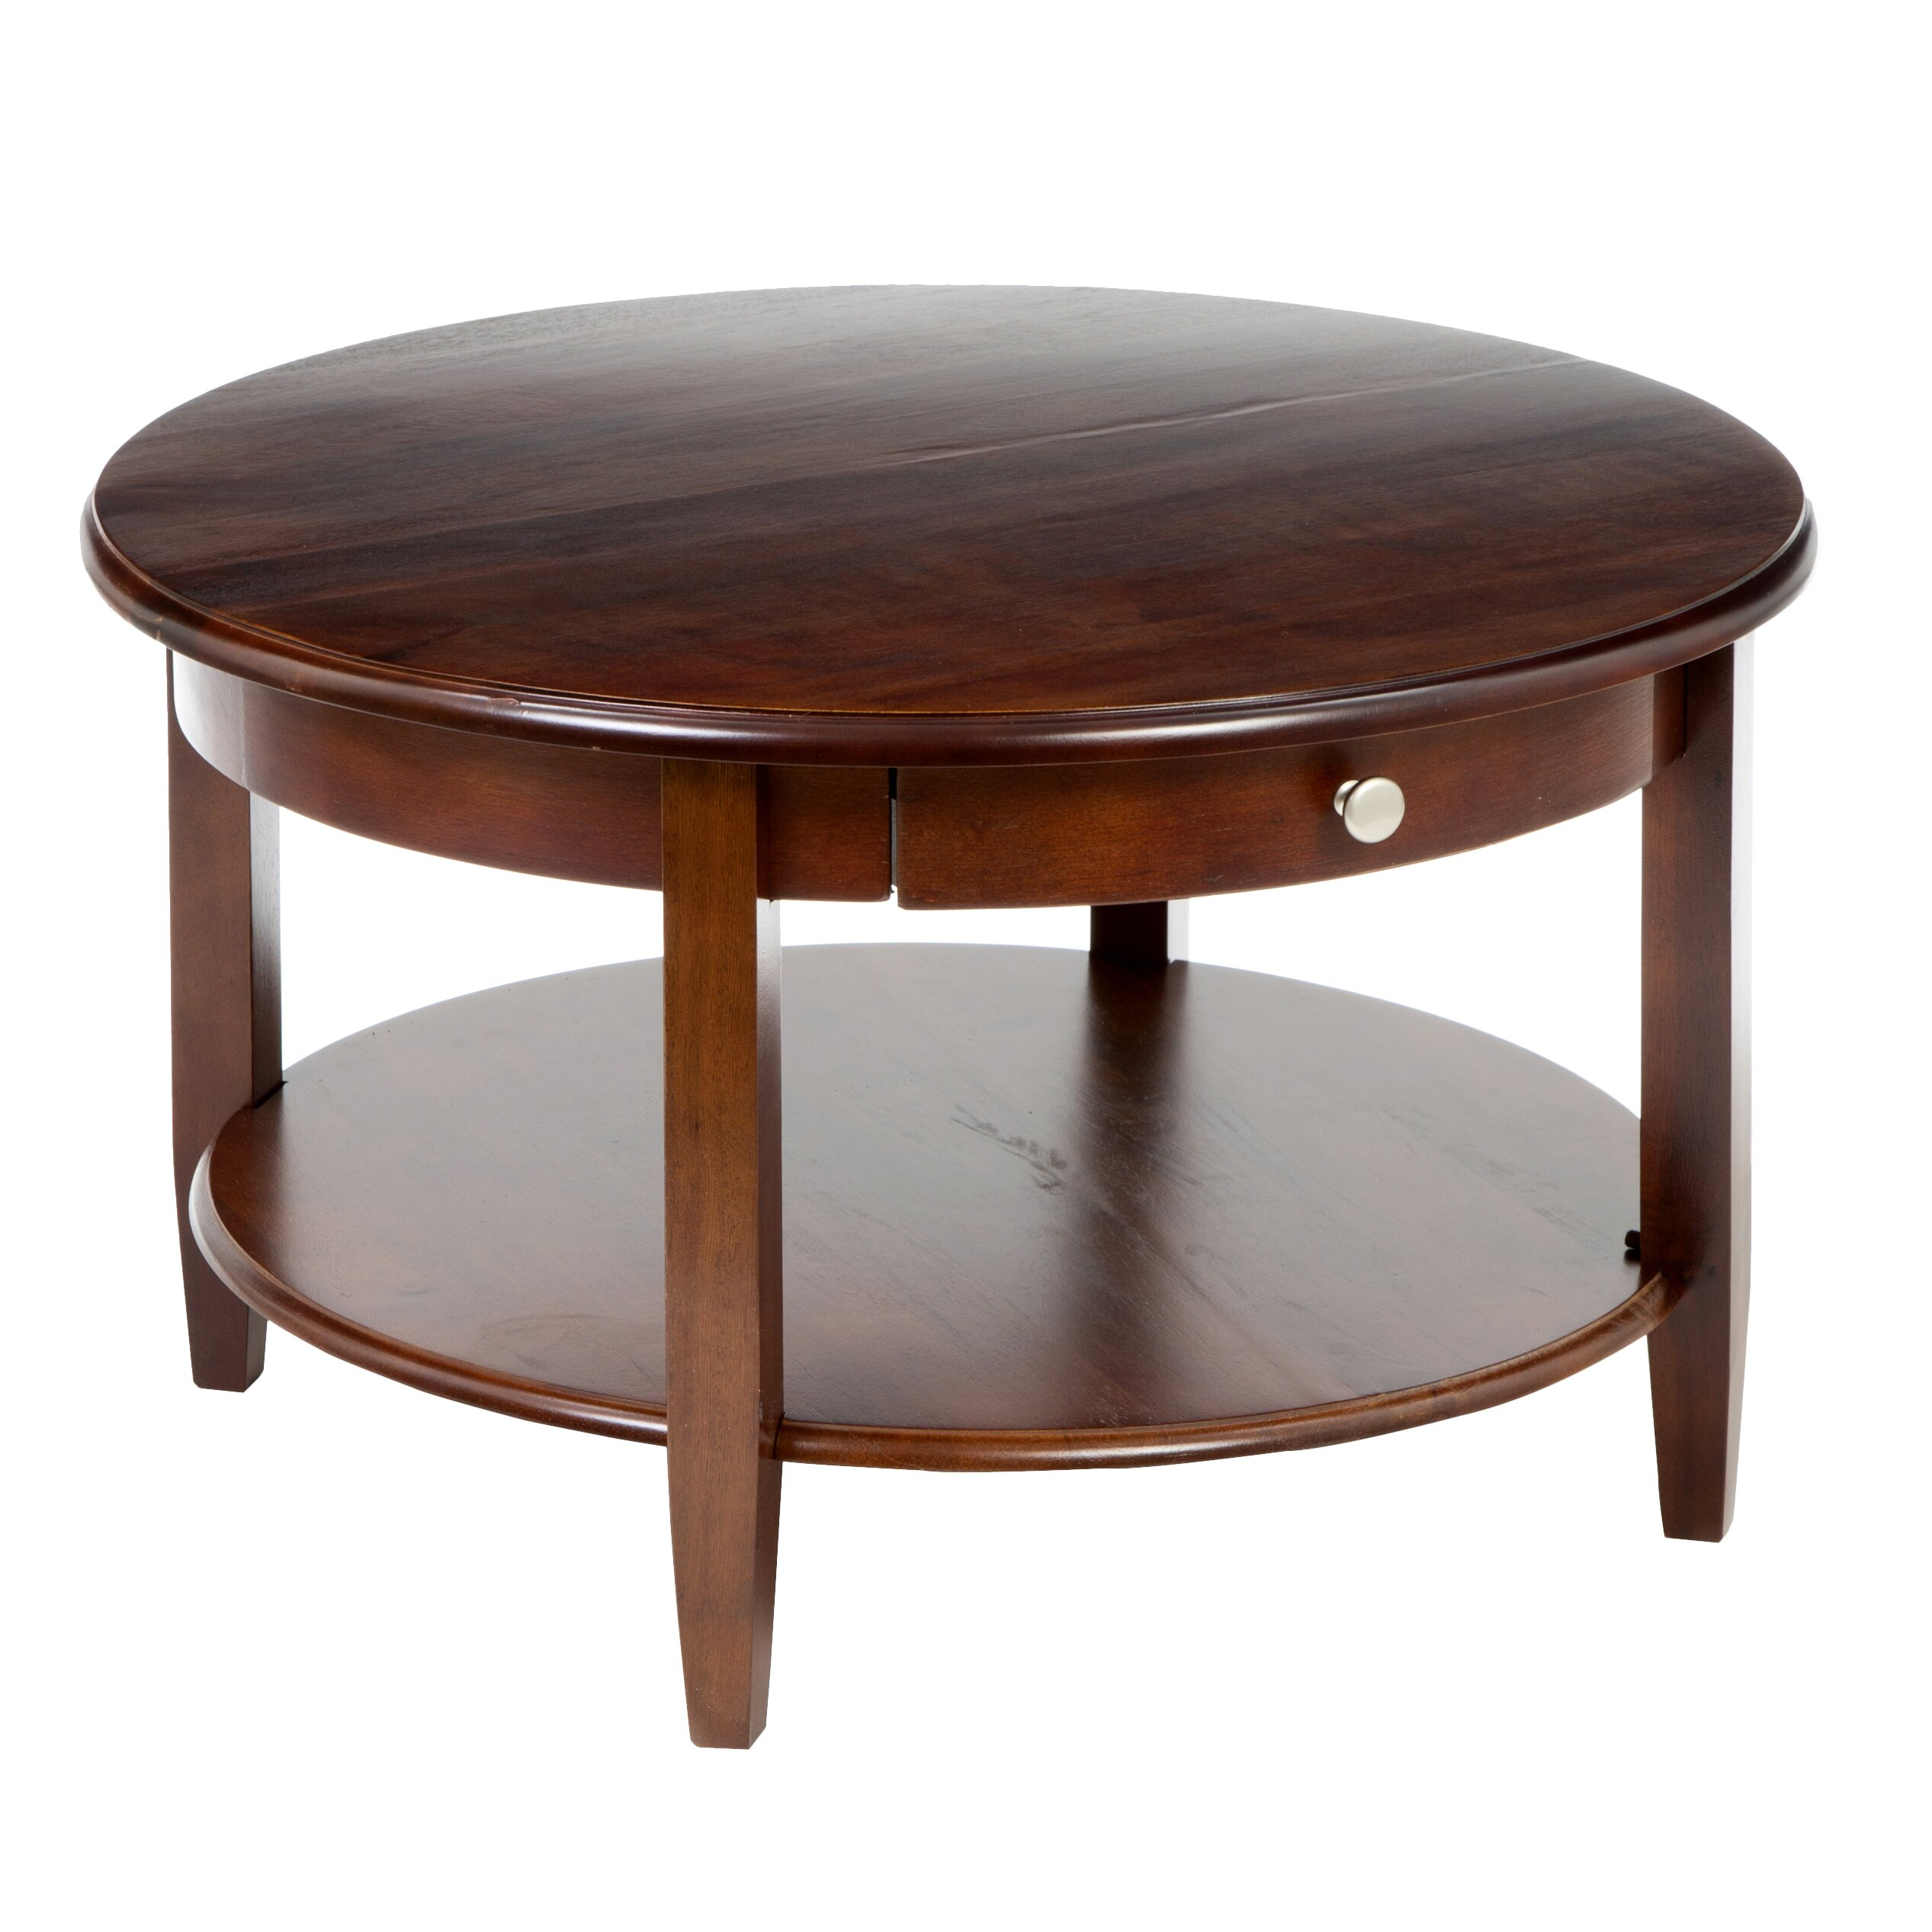 Charlton Home Braeswood Coffee Table Reviews Wayfair